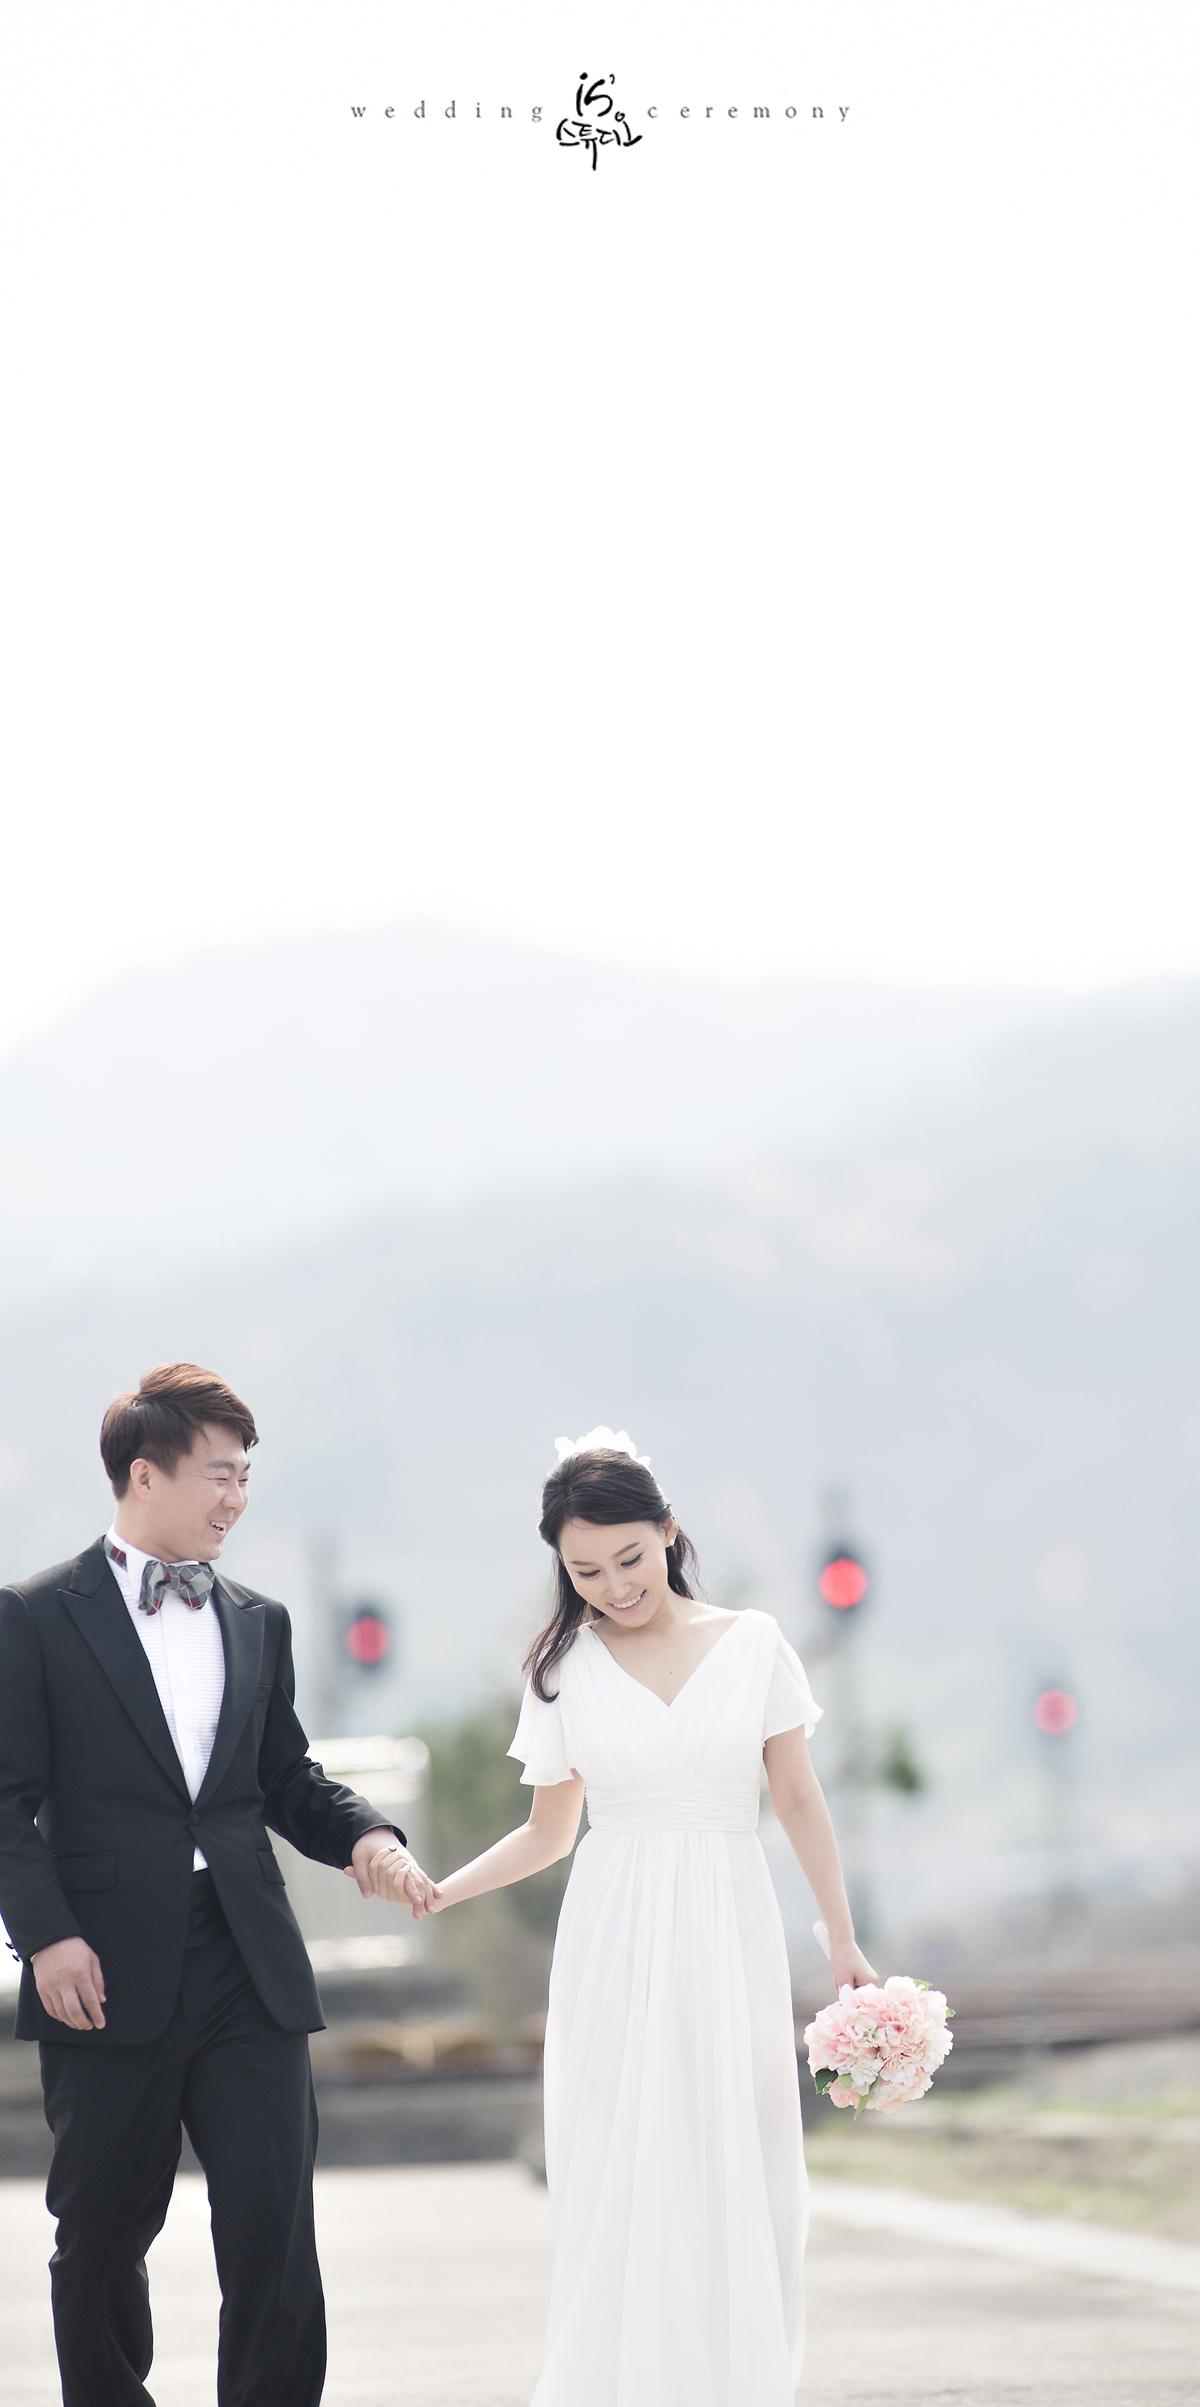 봄 wedding rehearsal